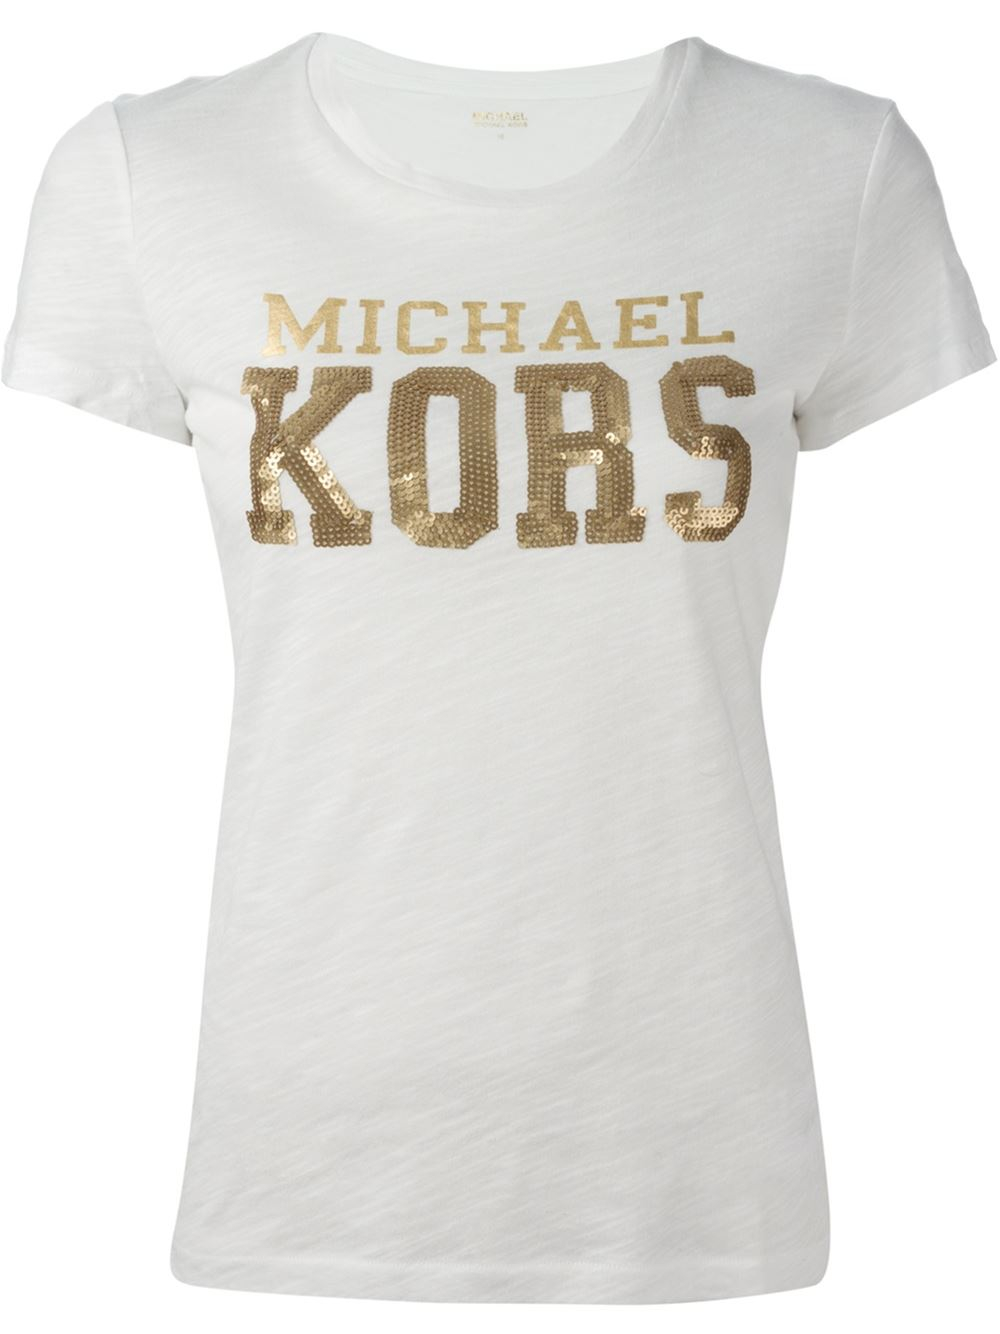 michael michael kors sequin embellished logo t shirt in white lyst. Black Bedroom Furniture Sets. Home Design Ideas